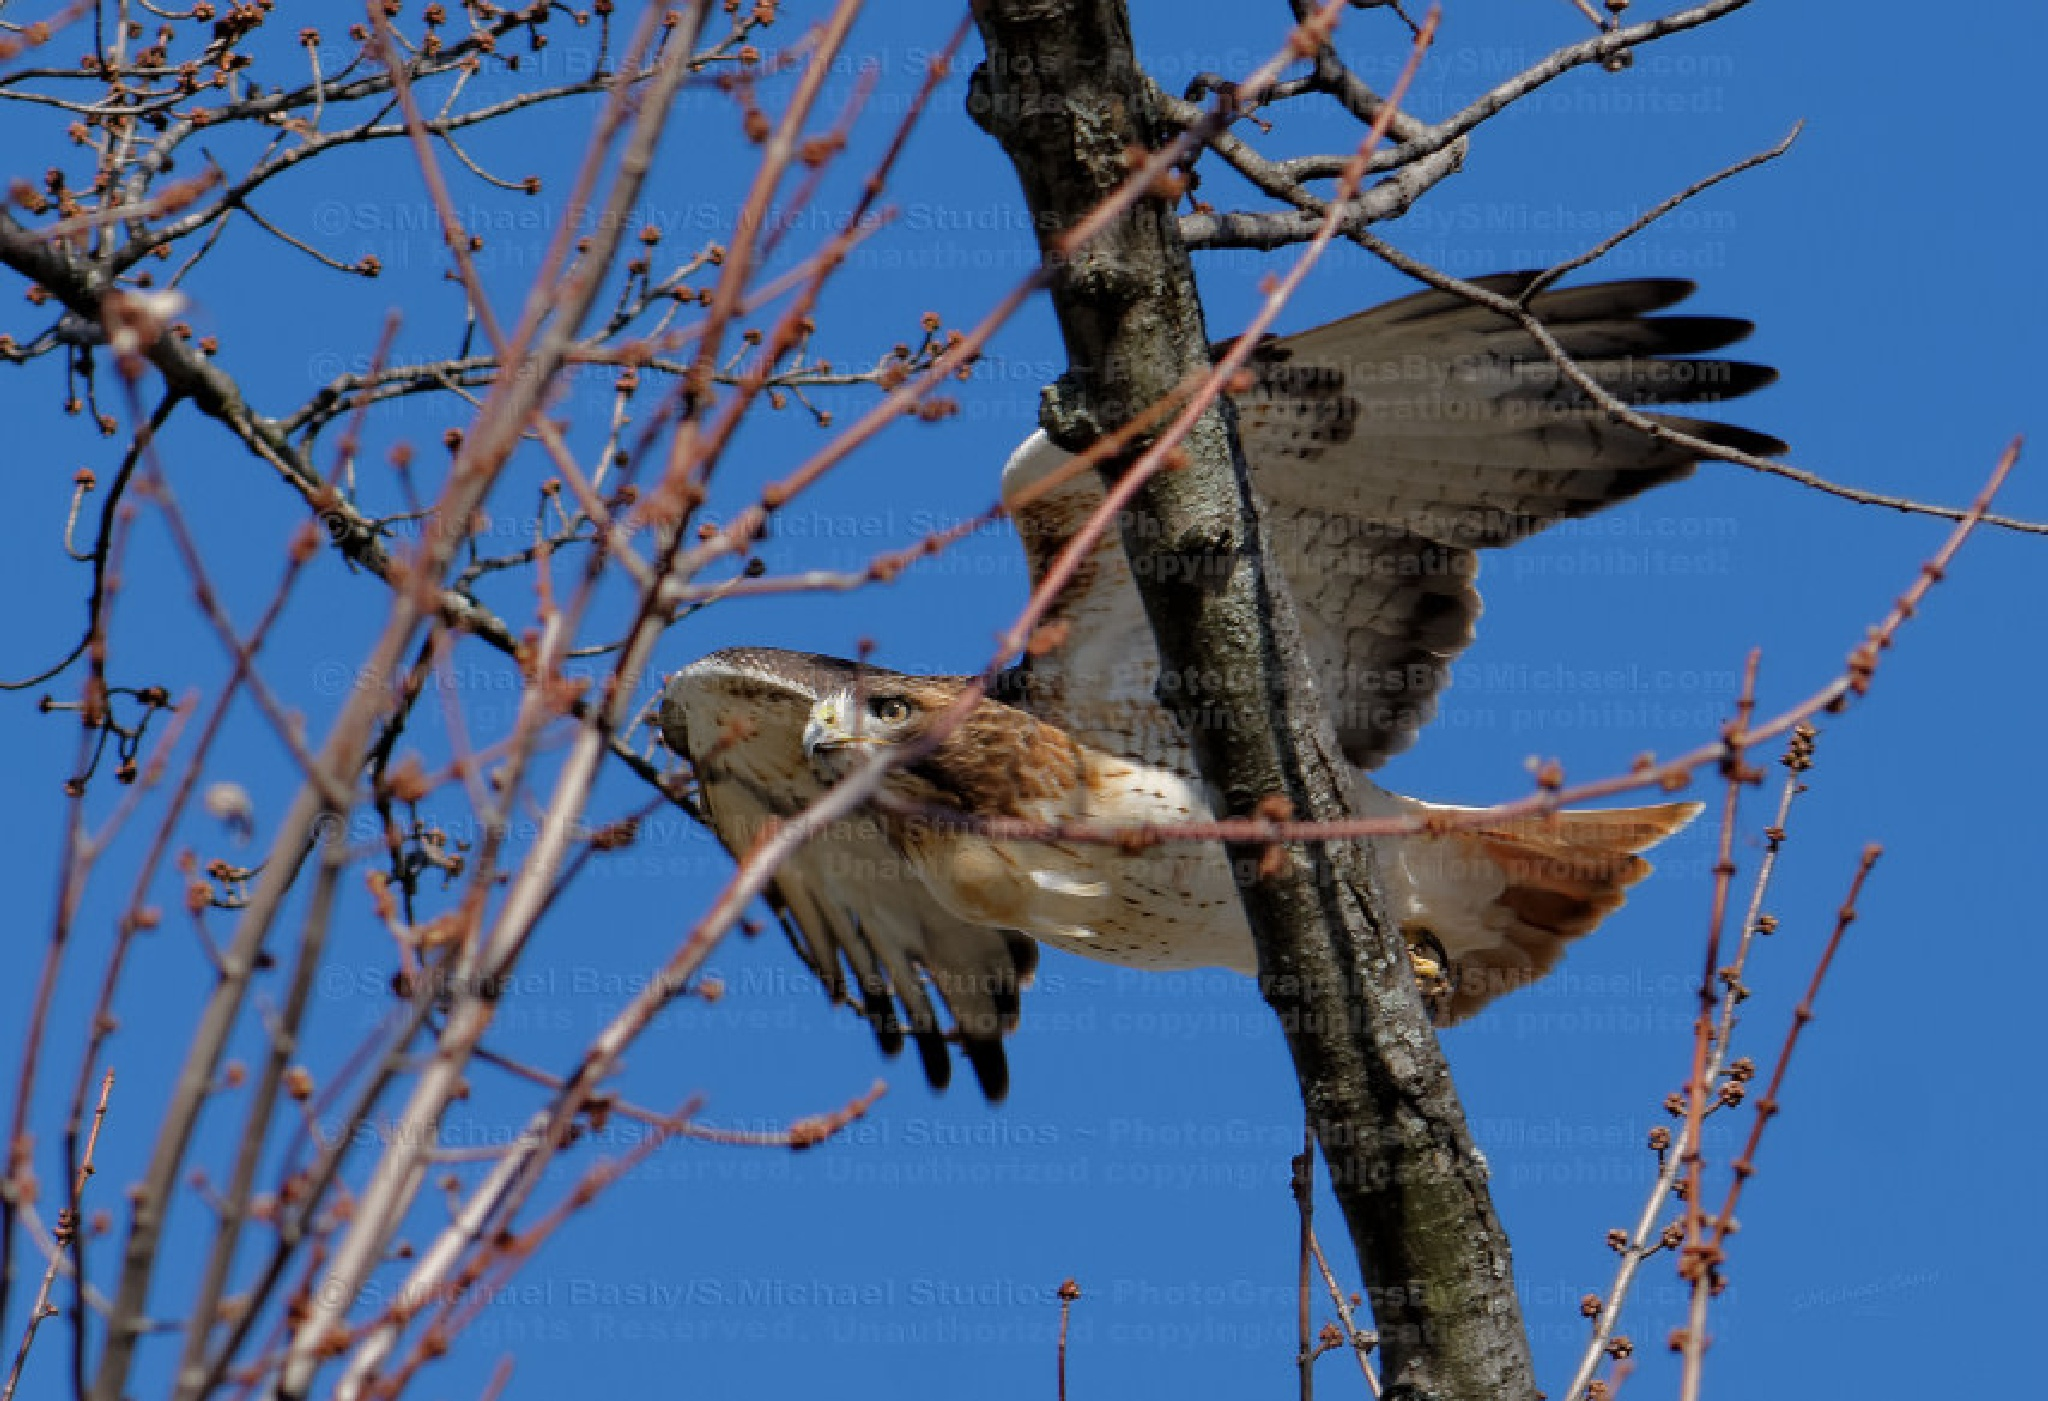 RED TAIL HAWK - Flying Through Treetop by sbasly